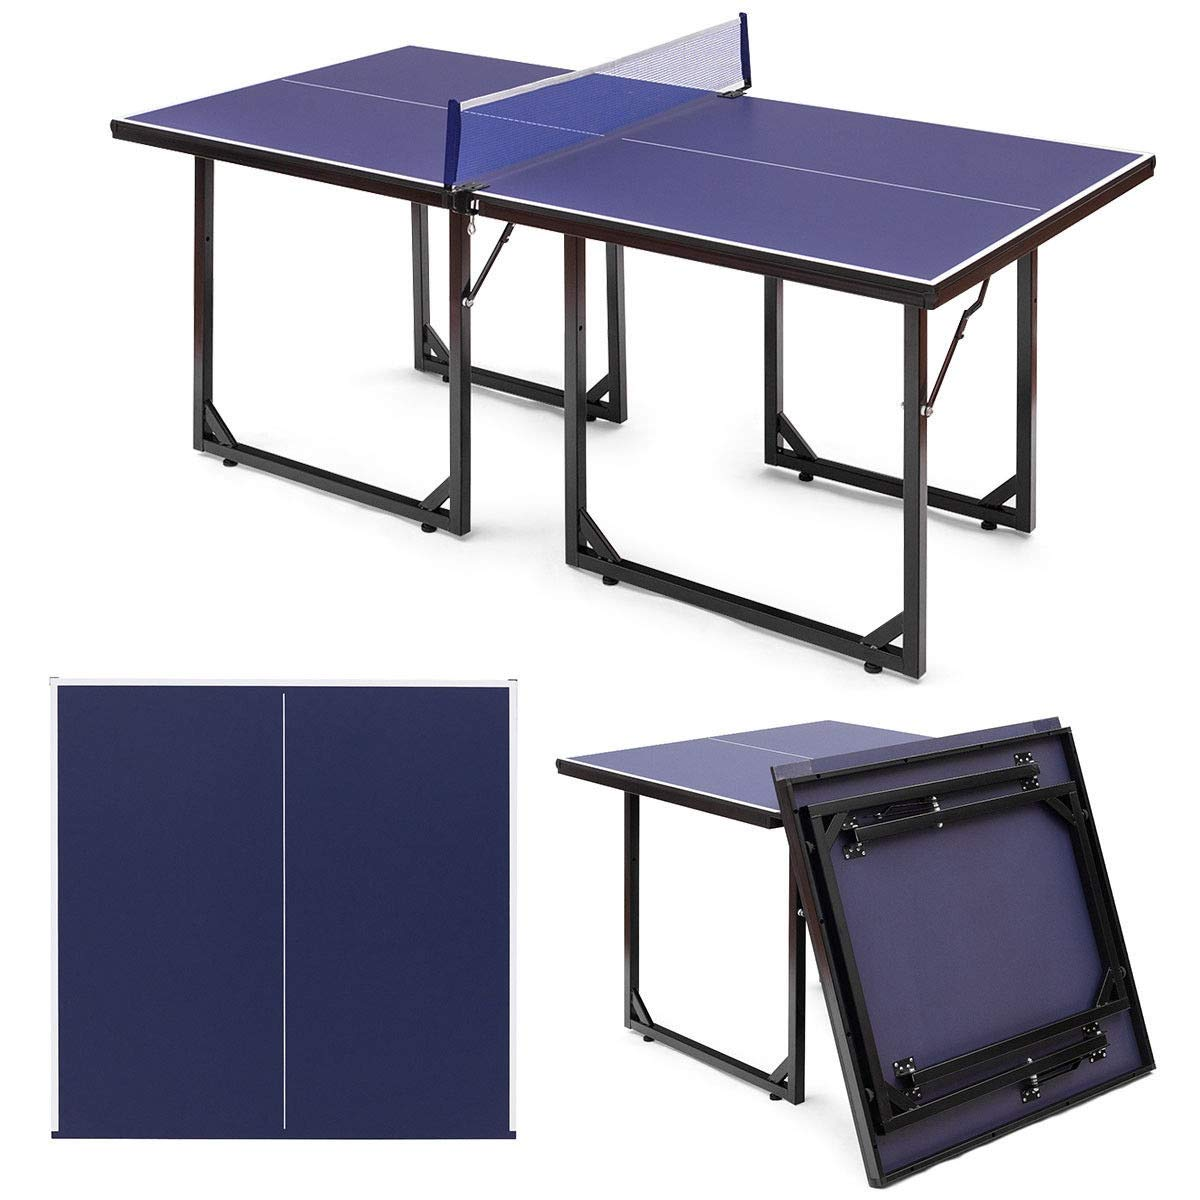 Multi-Use Foldable Midsize Removable Compact Ping-pong Table by AchieveUSA